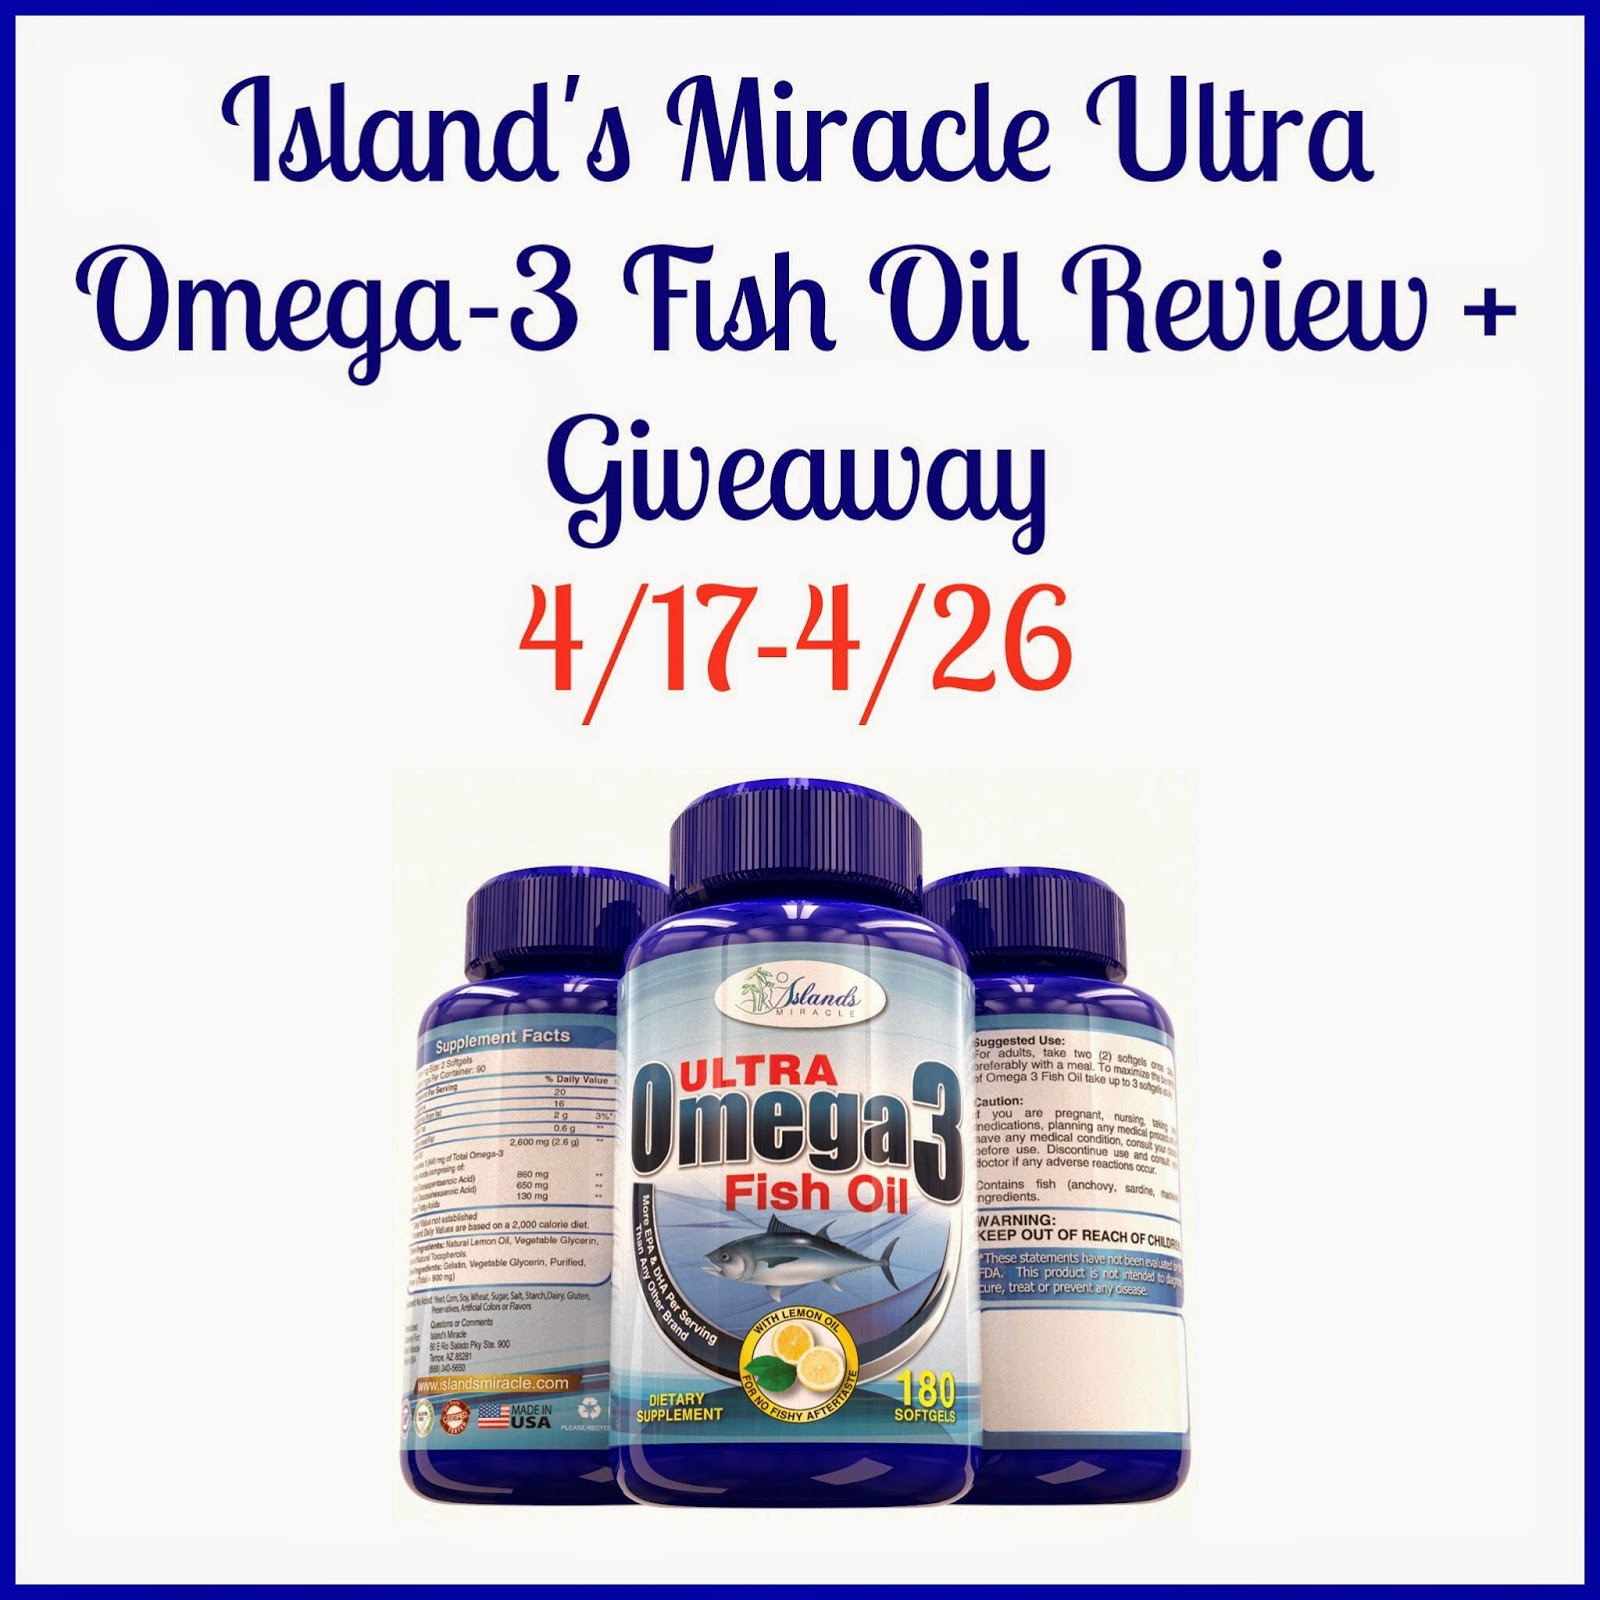 Here we go again ready island 39 s miracle ultra omega 3 for Fish oil ratings